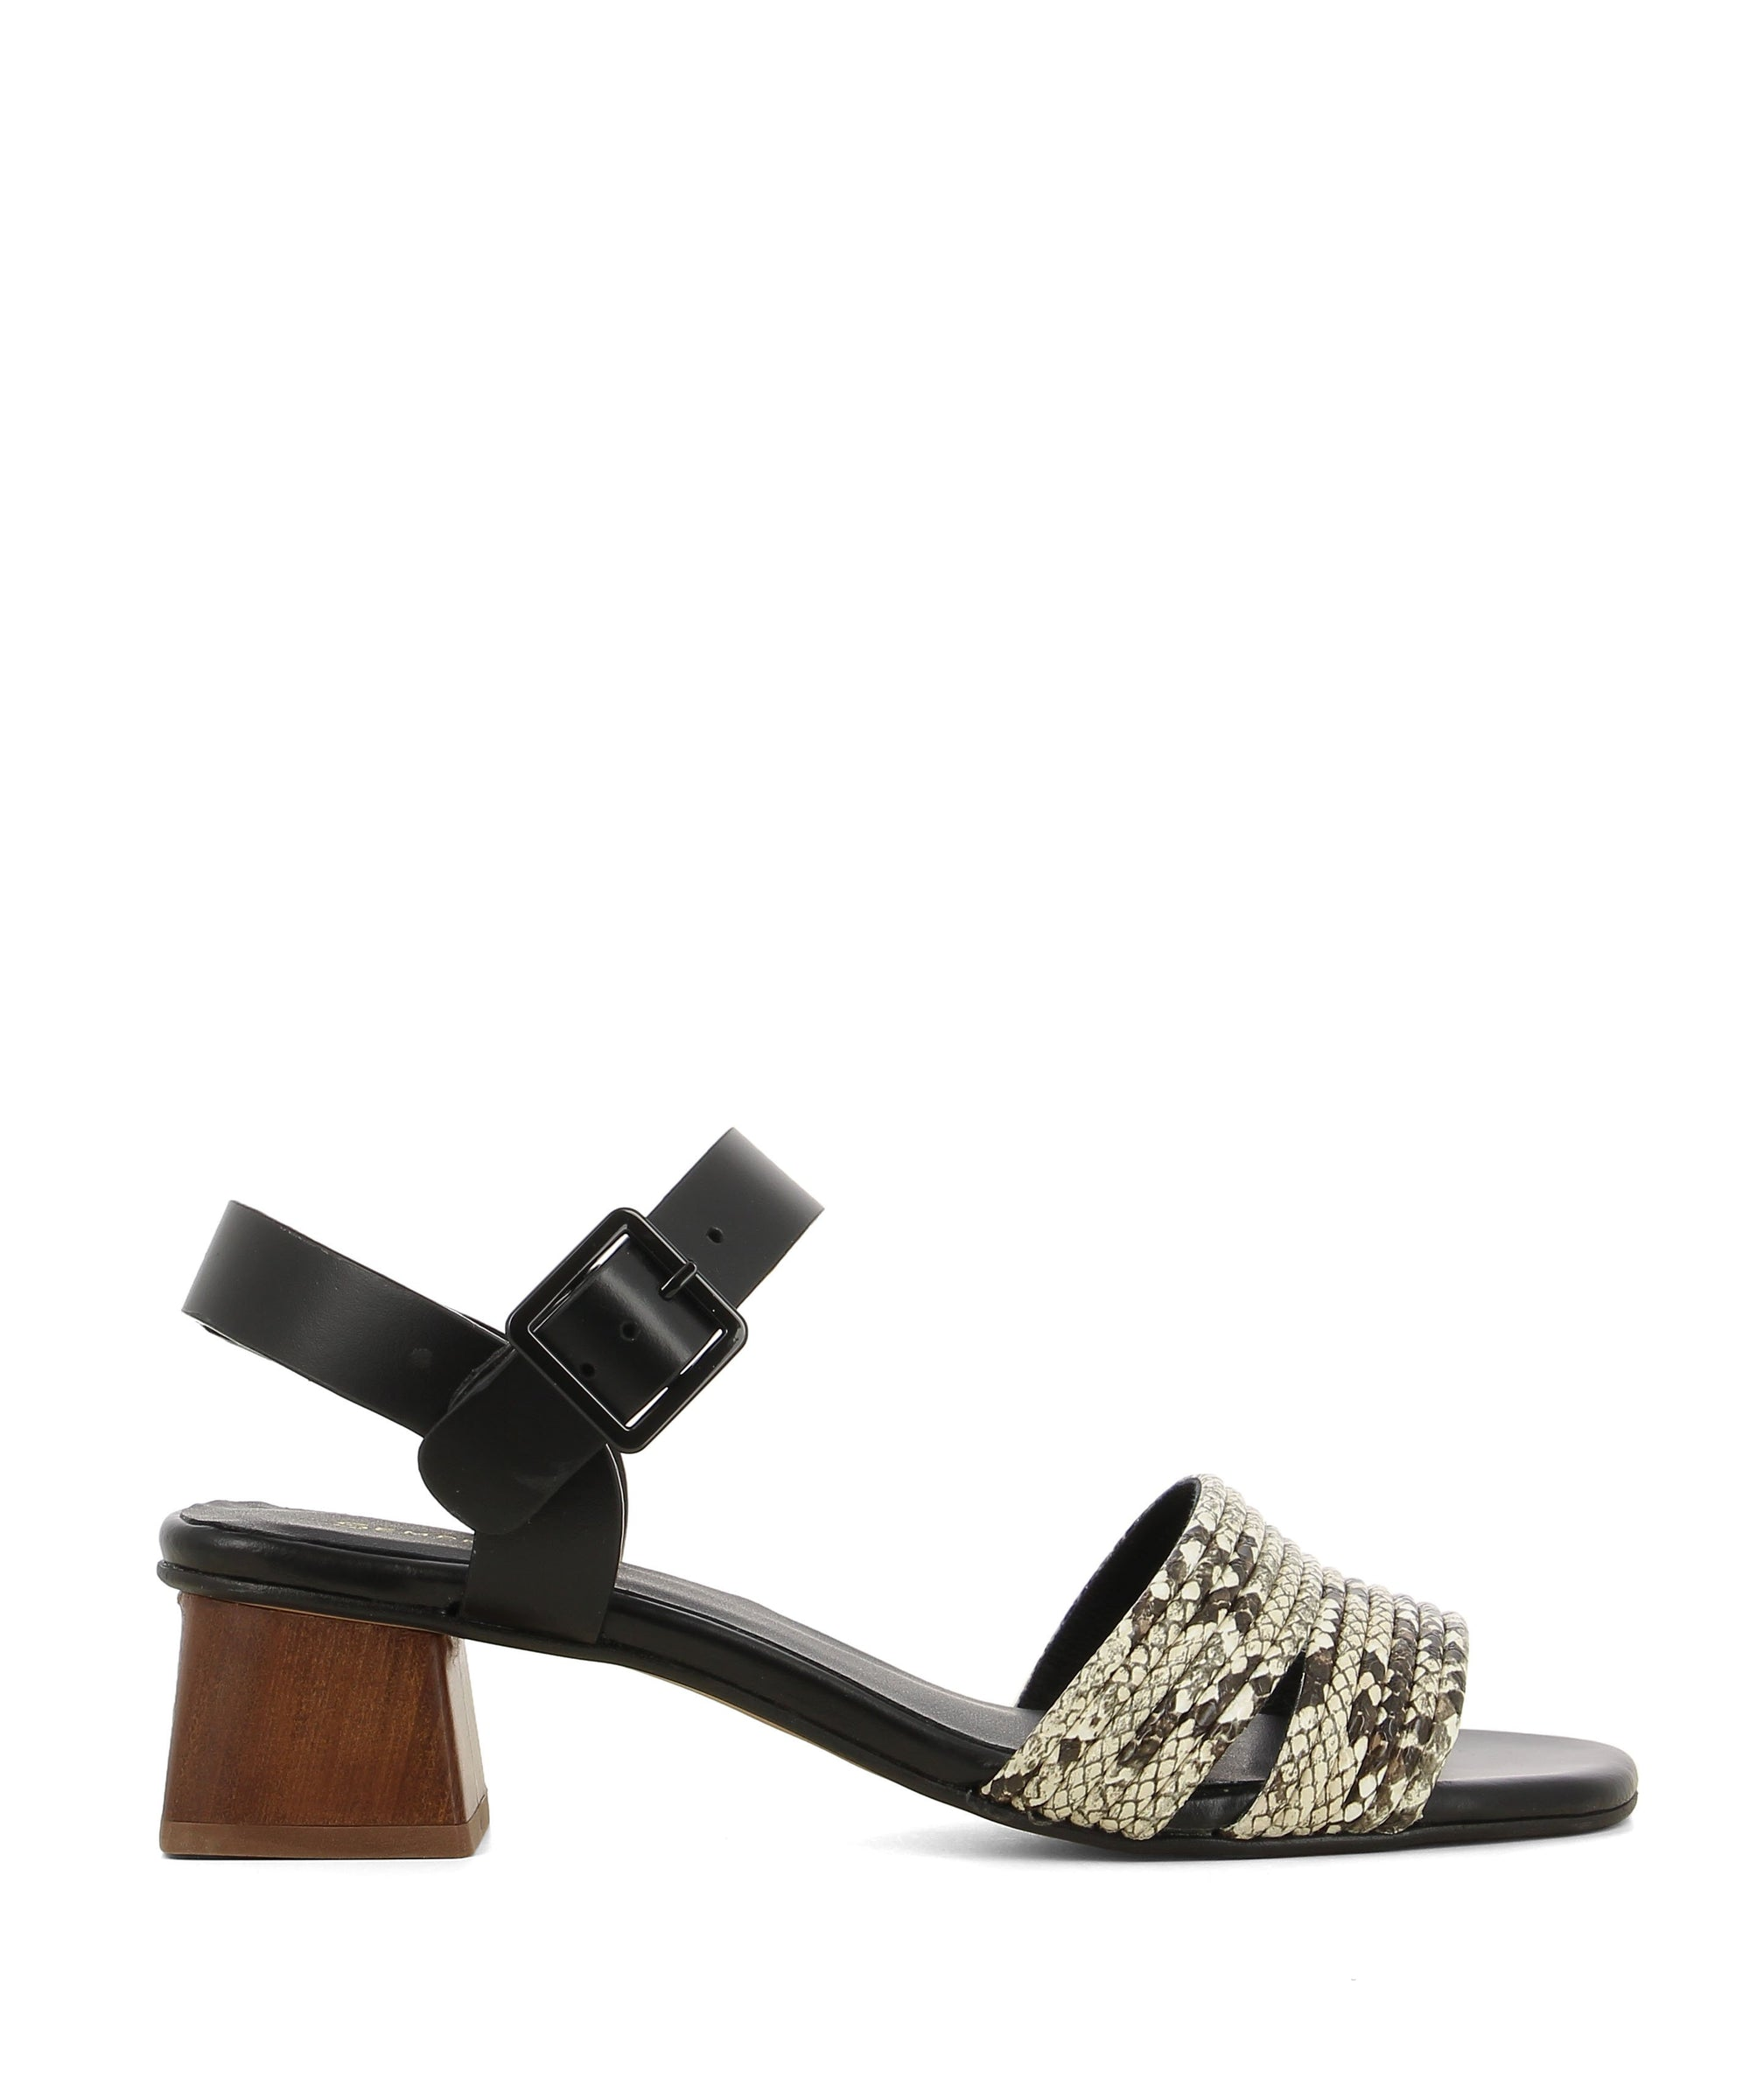 Black and white strappy heeled sandals that have an ankle strap with a buckle fastening and features a snake-embossed upper, a brown flared block heel and an open square toe by Sempre Di.